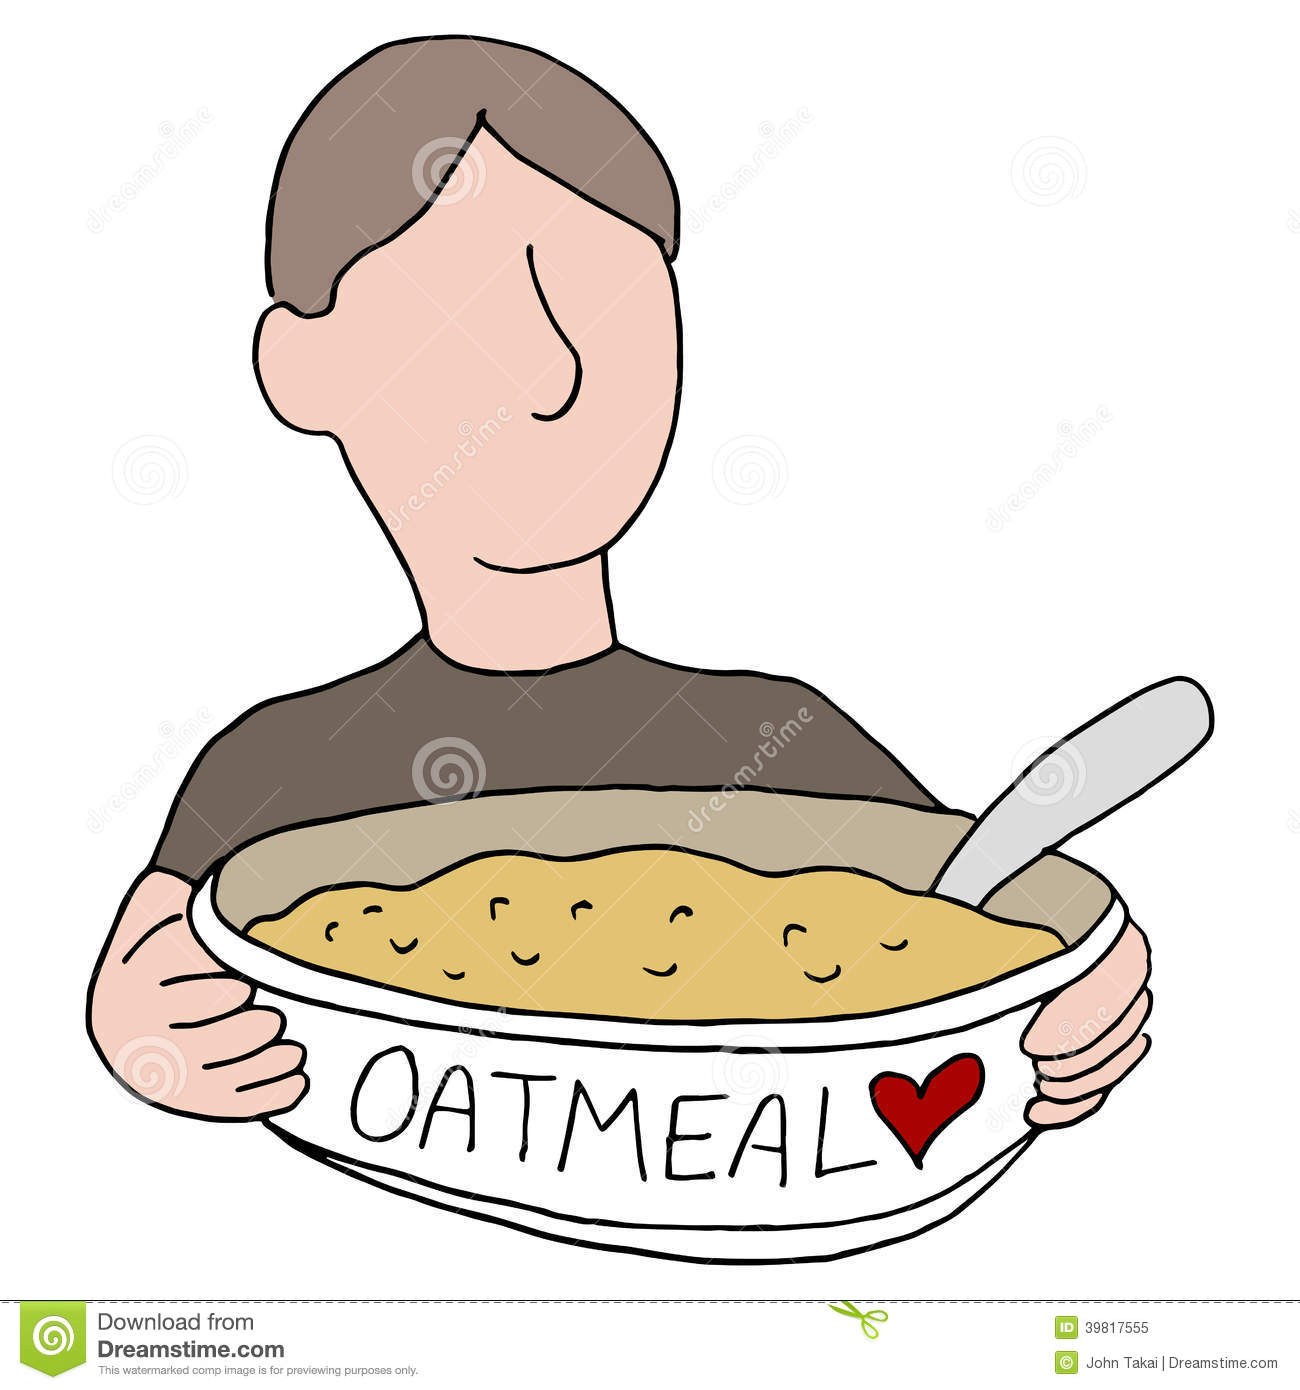 Bowl Of Oatmeal Clipart An Image Of A Man Eating Heart Healthy Oatmeal